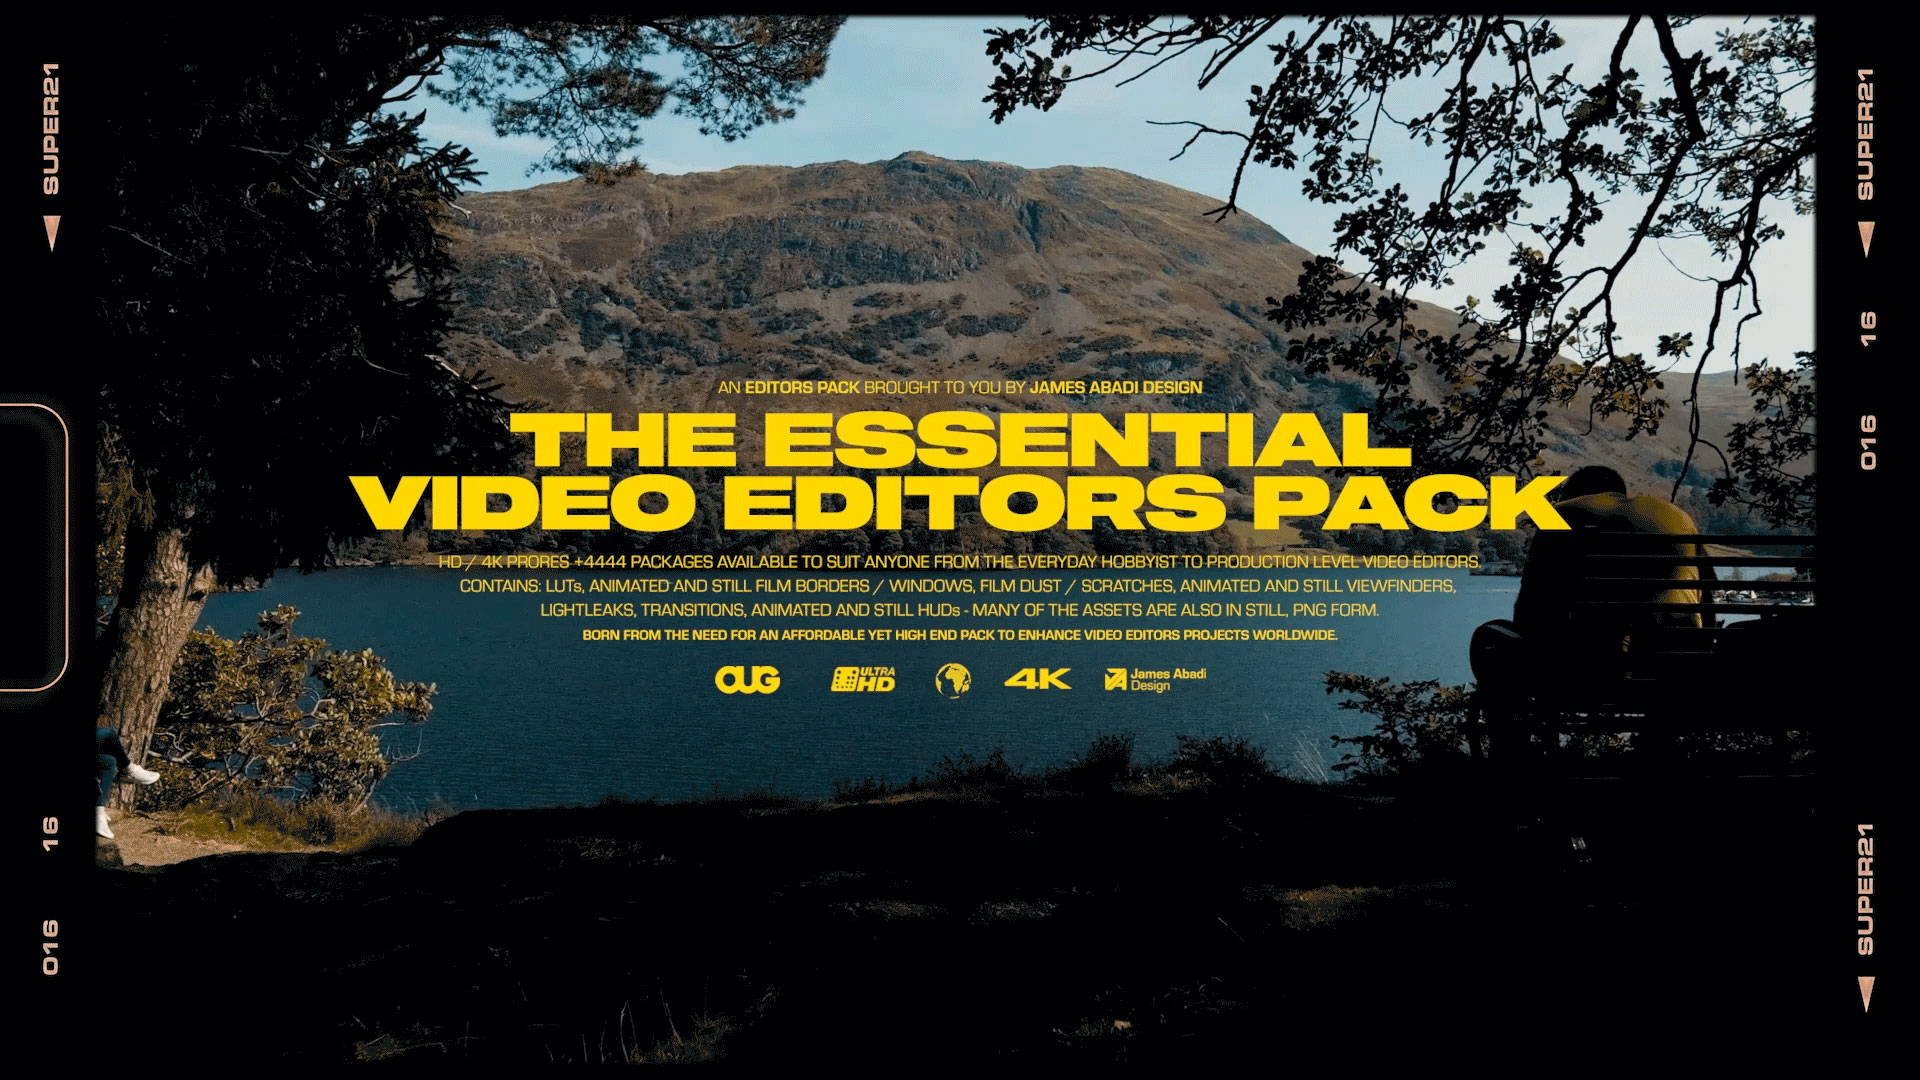 The Essential Video Editors Pack